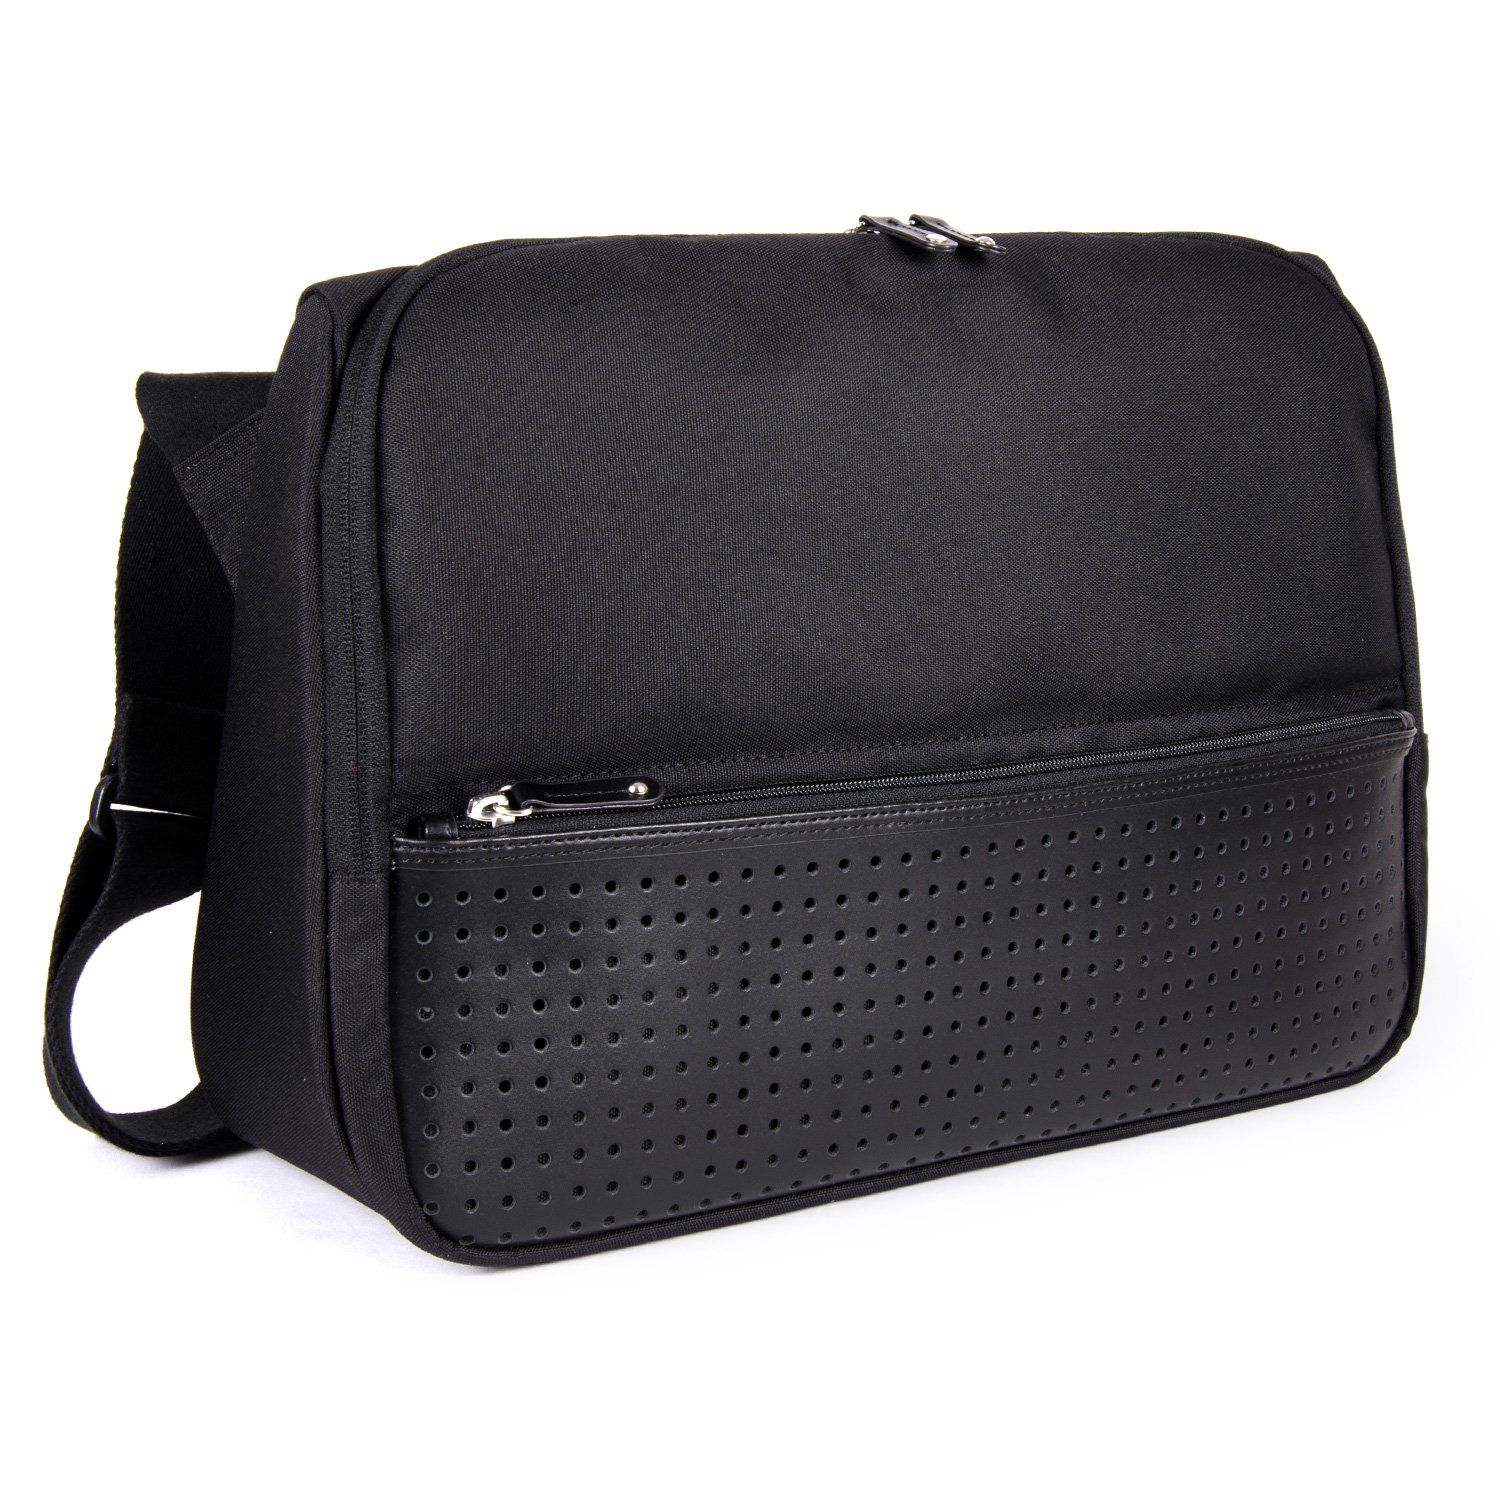 2b11867d5eb2 FINEDAYS Triangle Commuter Bag by BZLStudio  Up to 15 inch Laptop Messenger  Bag (Black